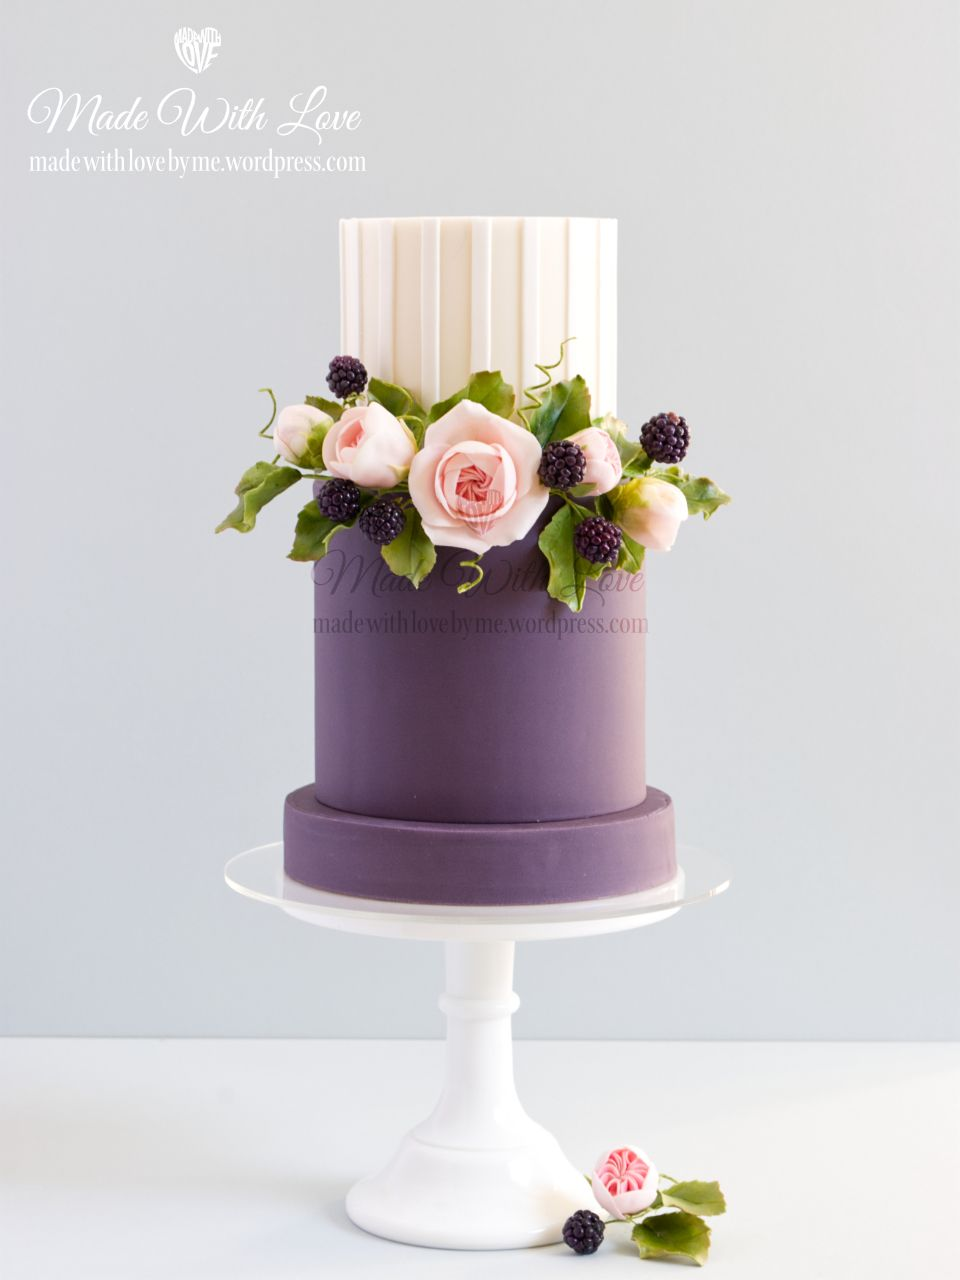 Made With Love By Me Bespoke Cakes Page 2 Wedding Cakes With Cupcakes Elegant Wedding Cakes Cake Design Inspiration